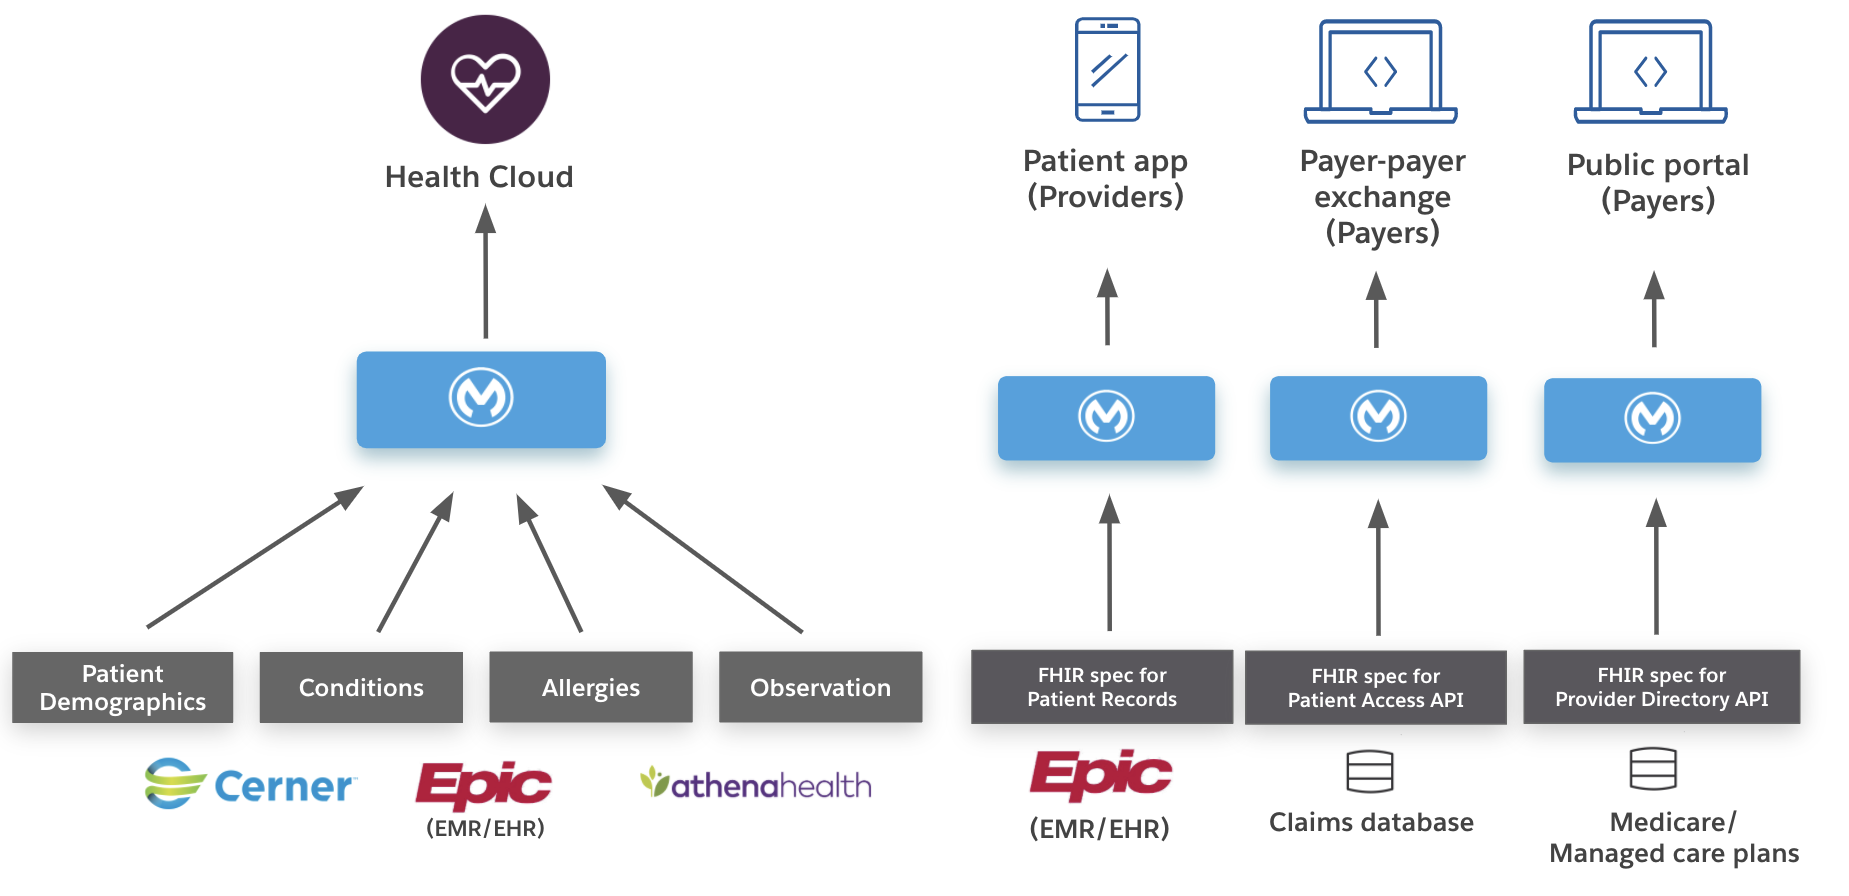 https://anypoint.mulesoft.com/exchange/68ef9520-24e9-4cf2-b2f5-620025690913/catalyst-accelerator-for-healthcare/2.0.0/resources/image-a367e401-544b-4897-9e3d-a92e66bbc8c9.png